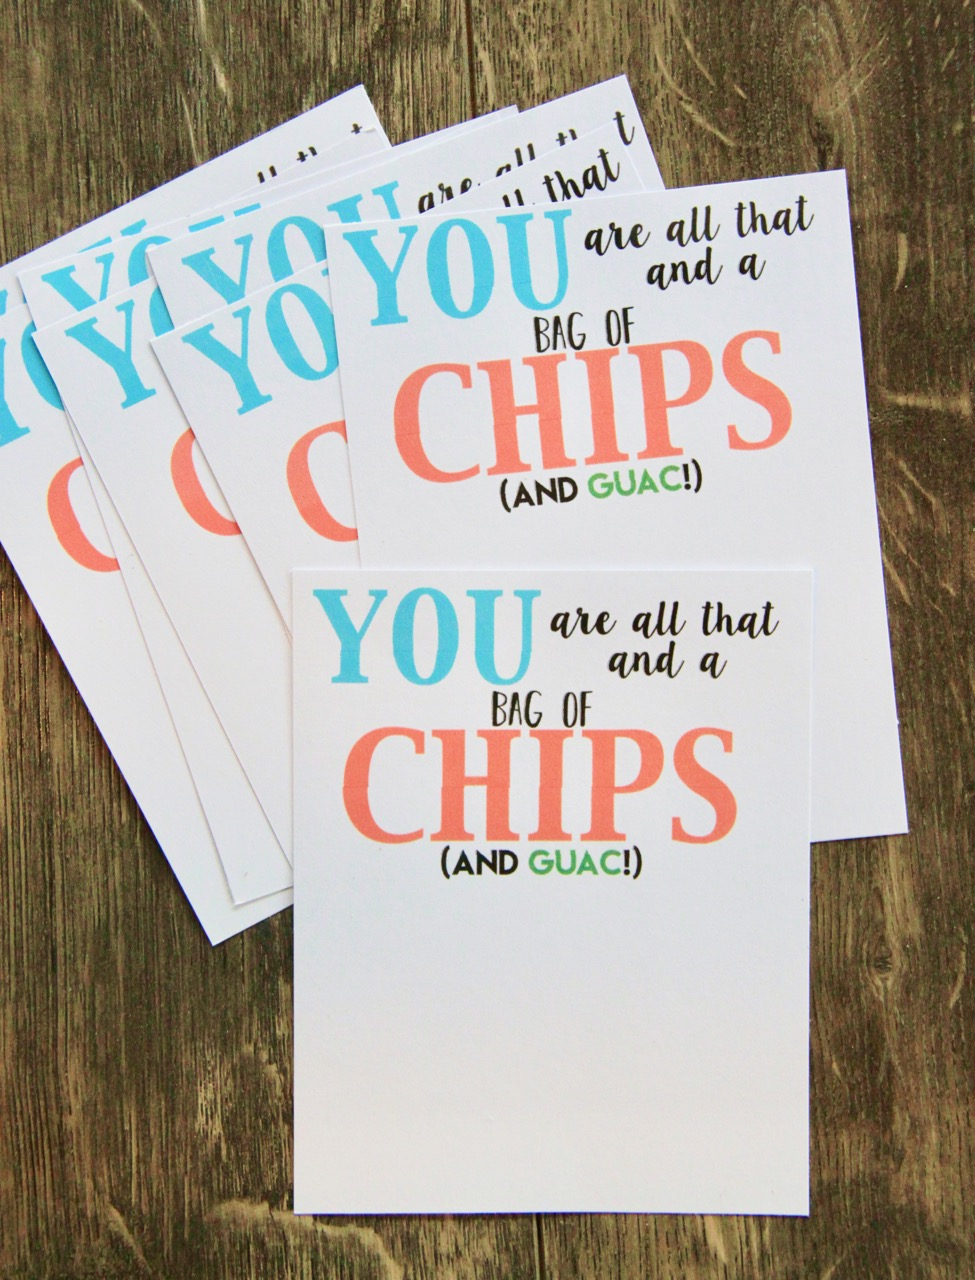 picture regarding You're All That and a Bag of Chips Free Printable called Chipotle Present Card Trainer Thank Oneself